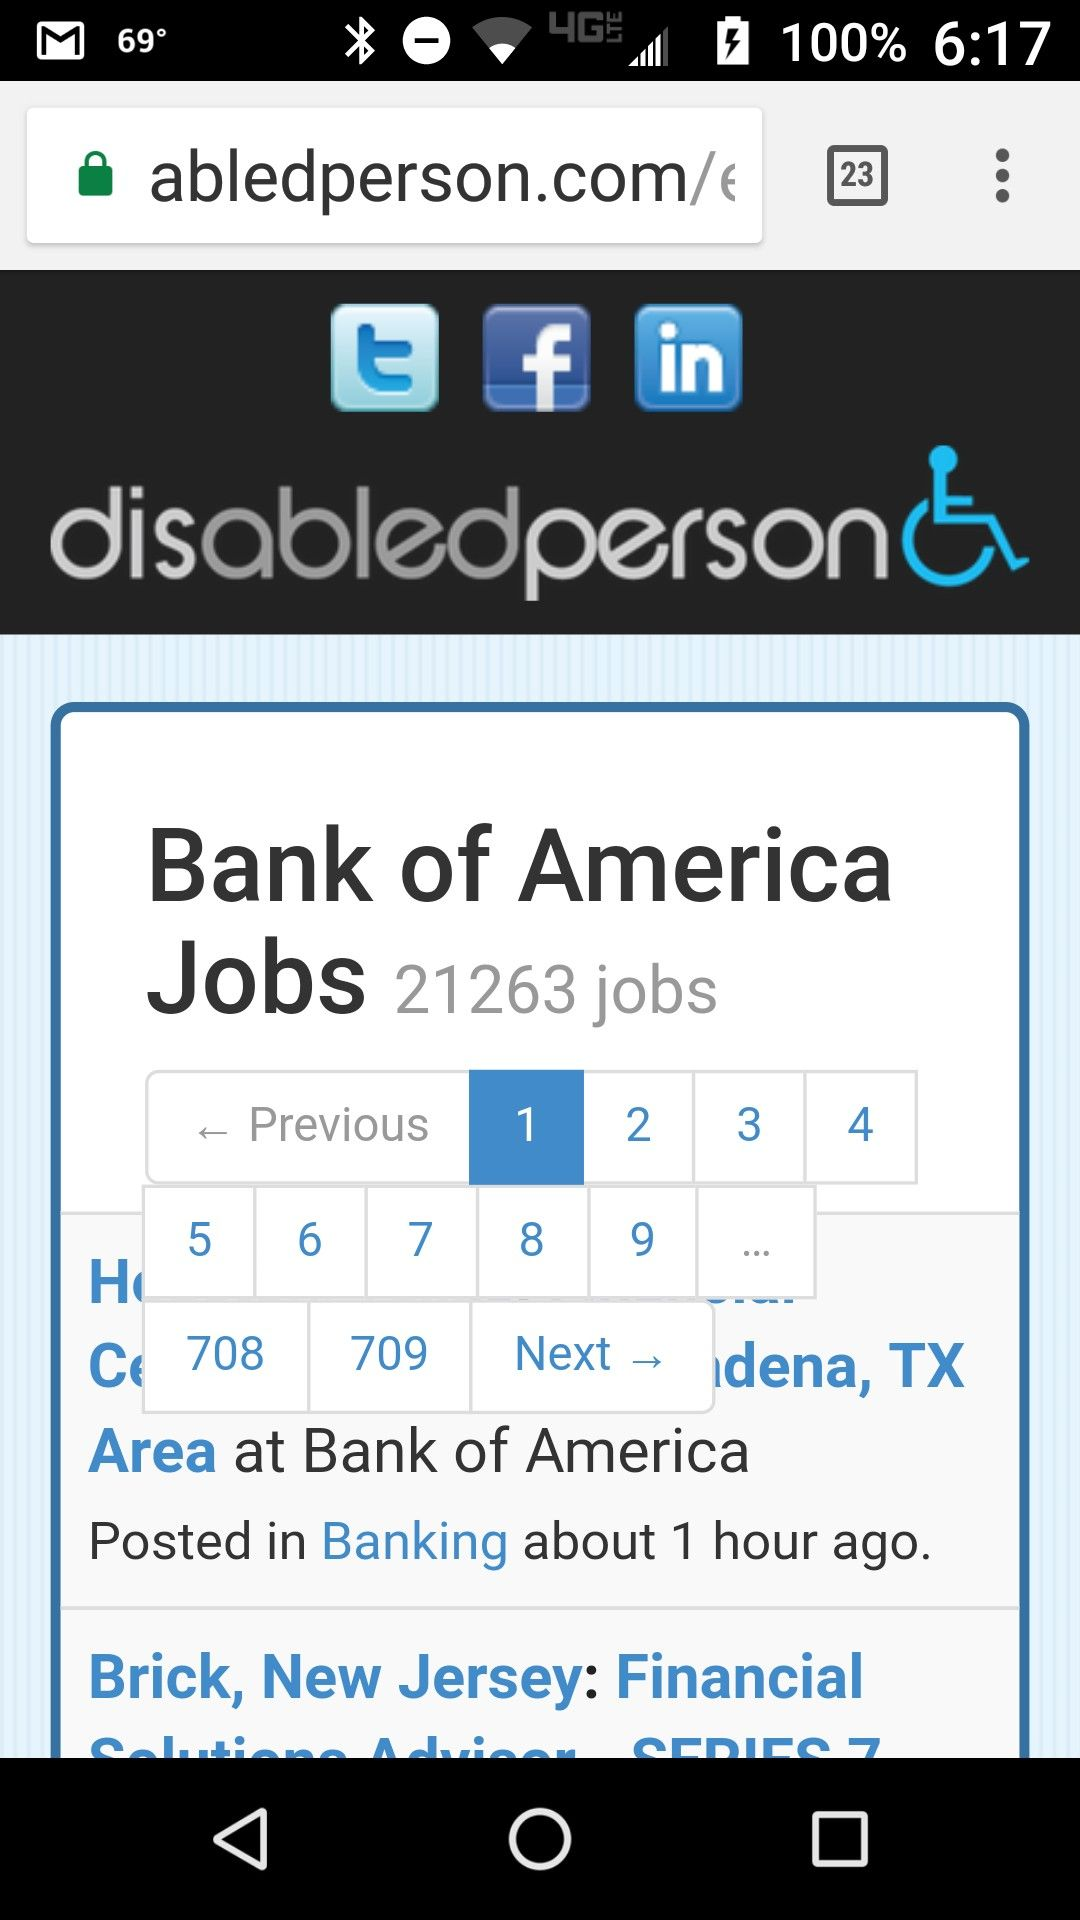 Are you a person with a disability looking for work bank